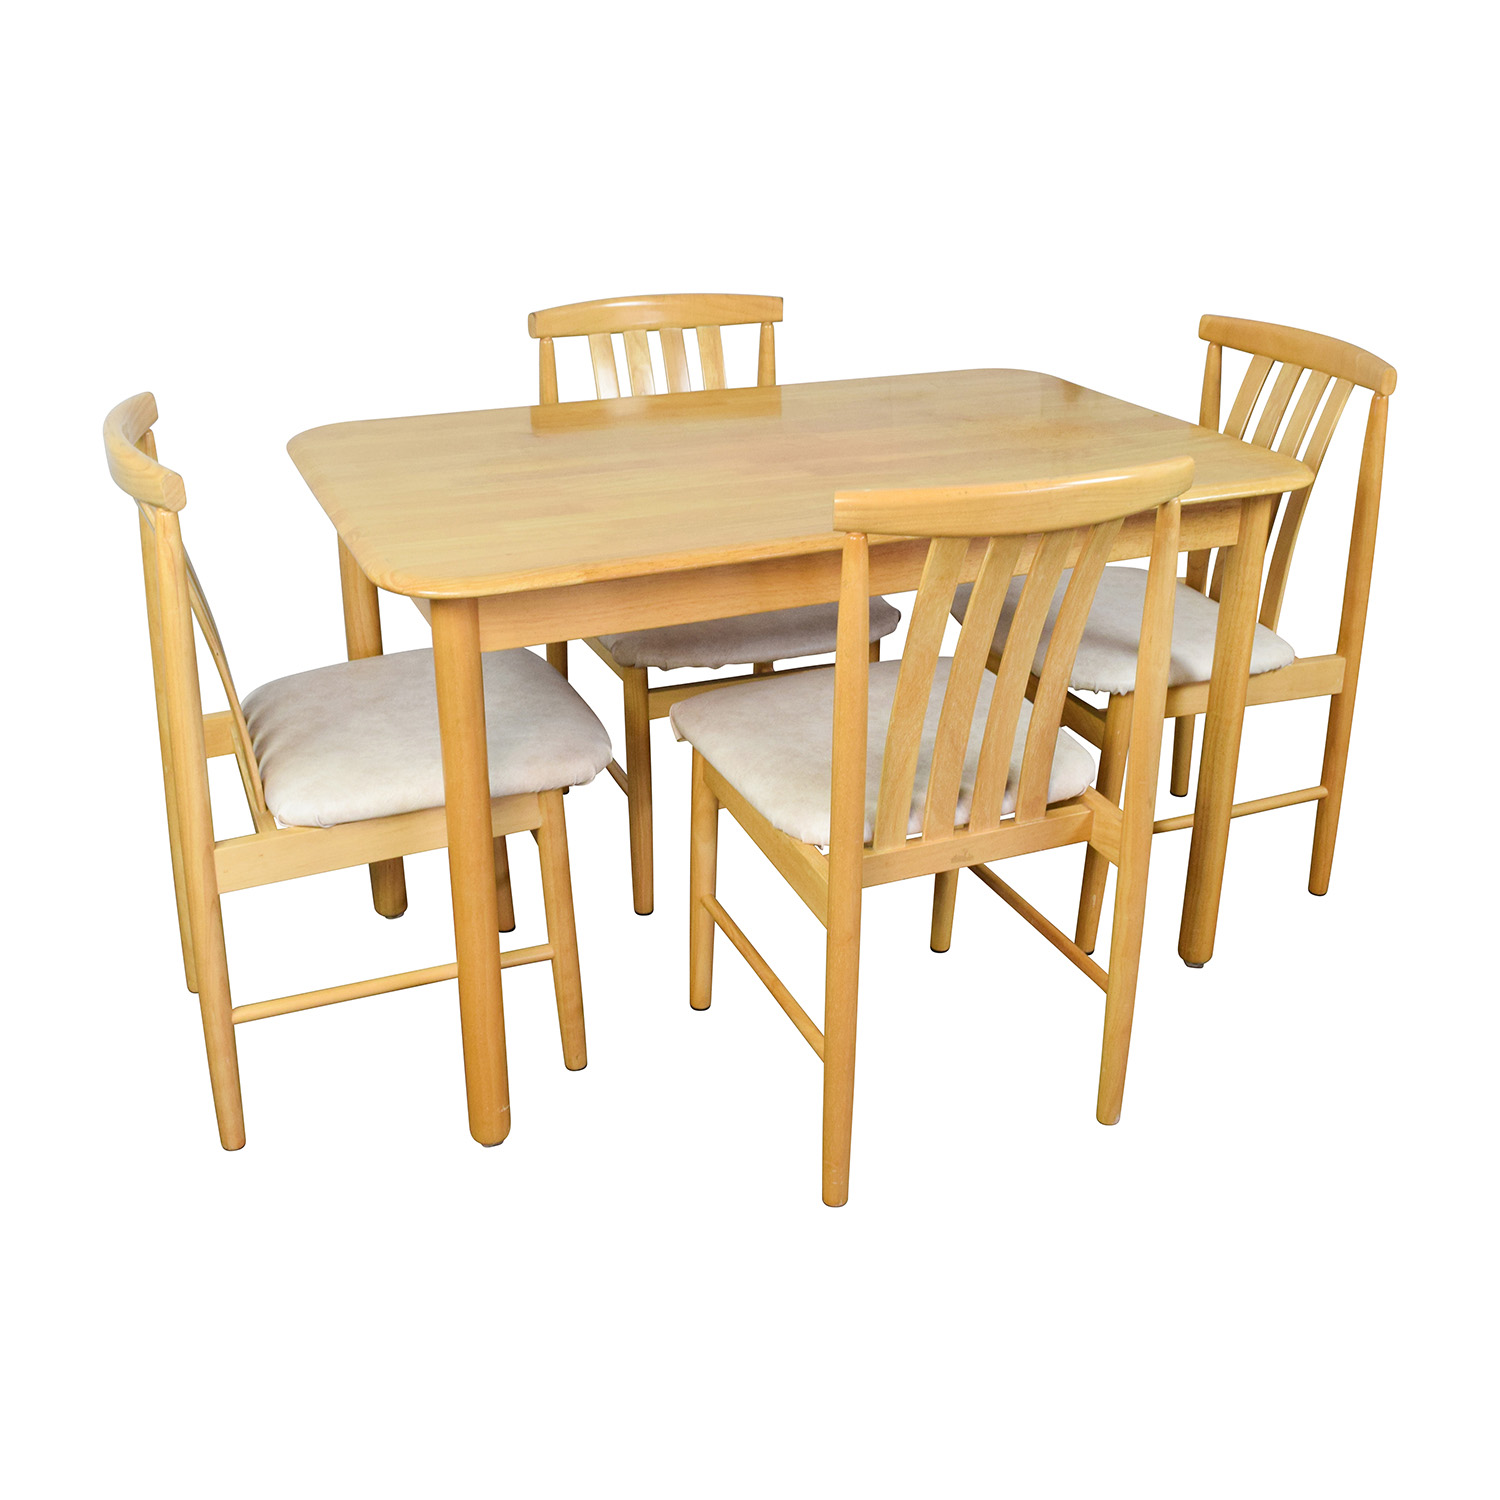 Light Wood Dining Table With Four Chairs For Sale